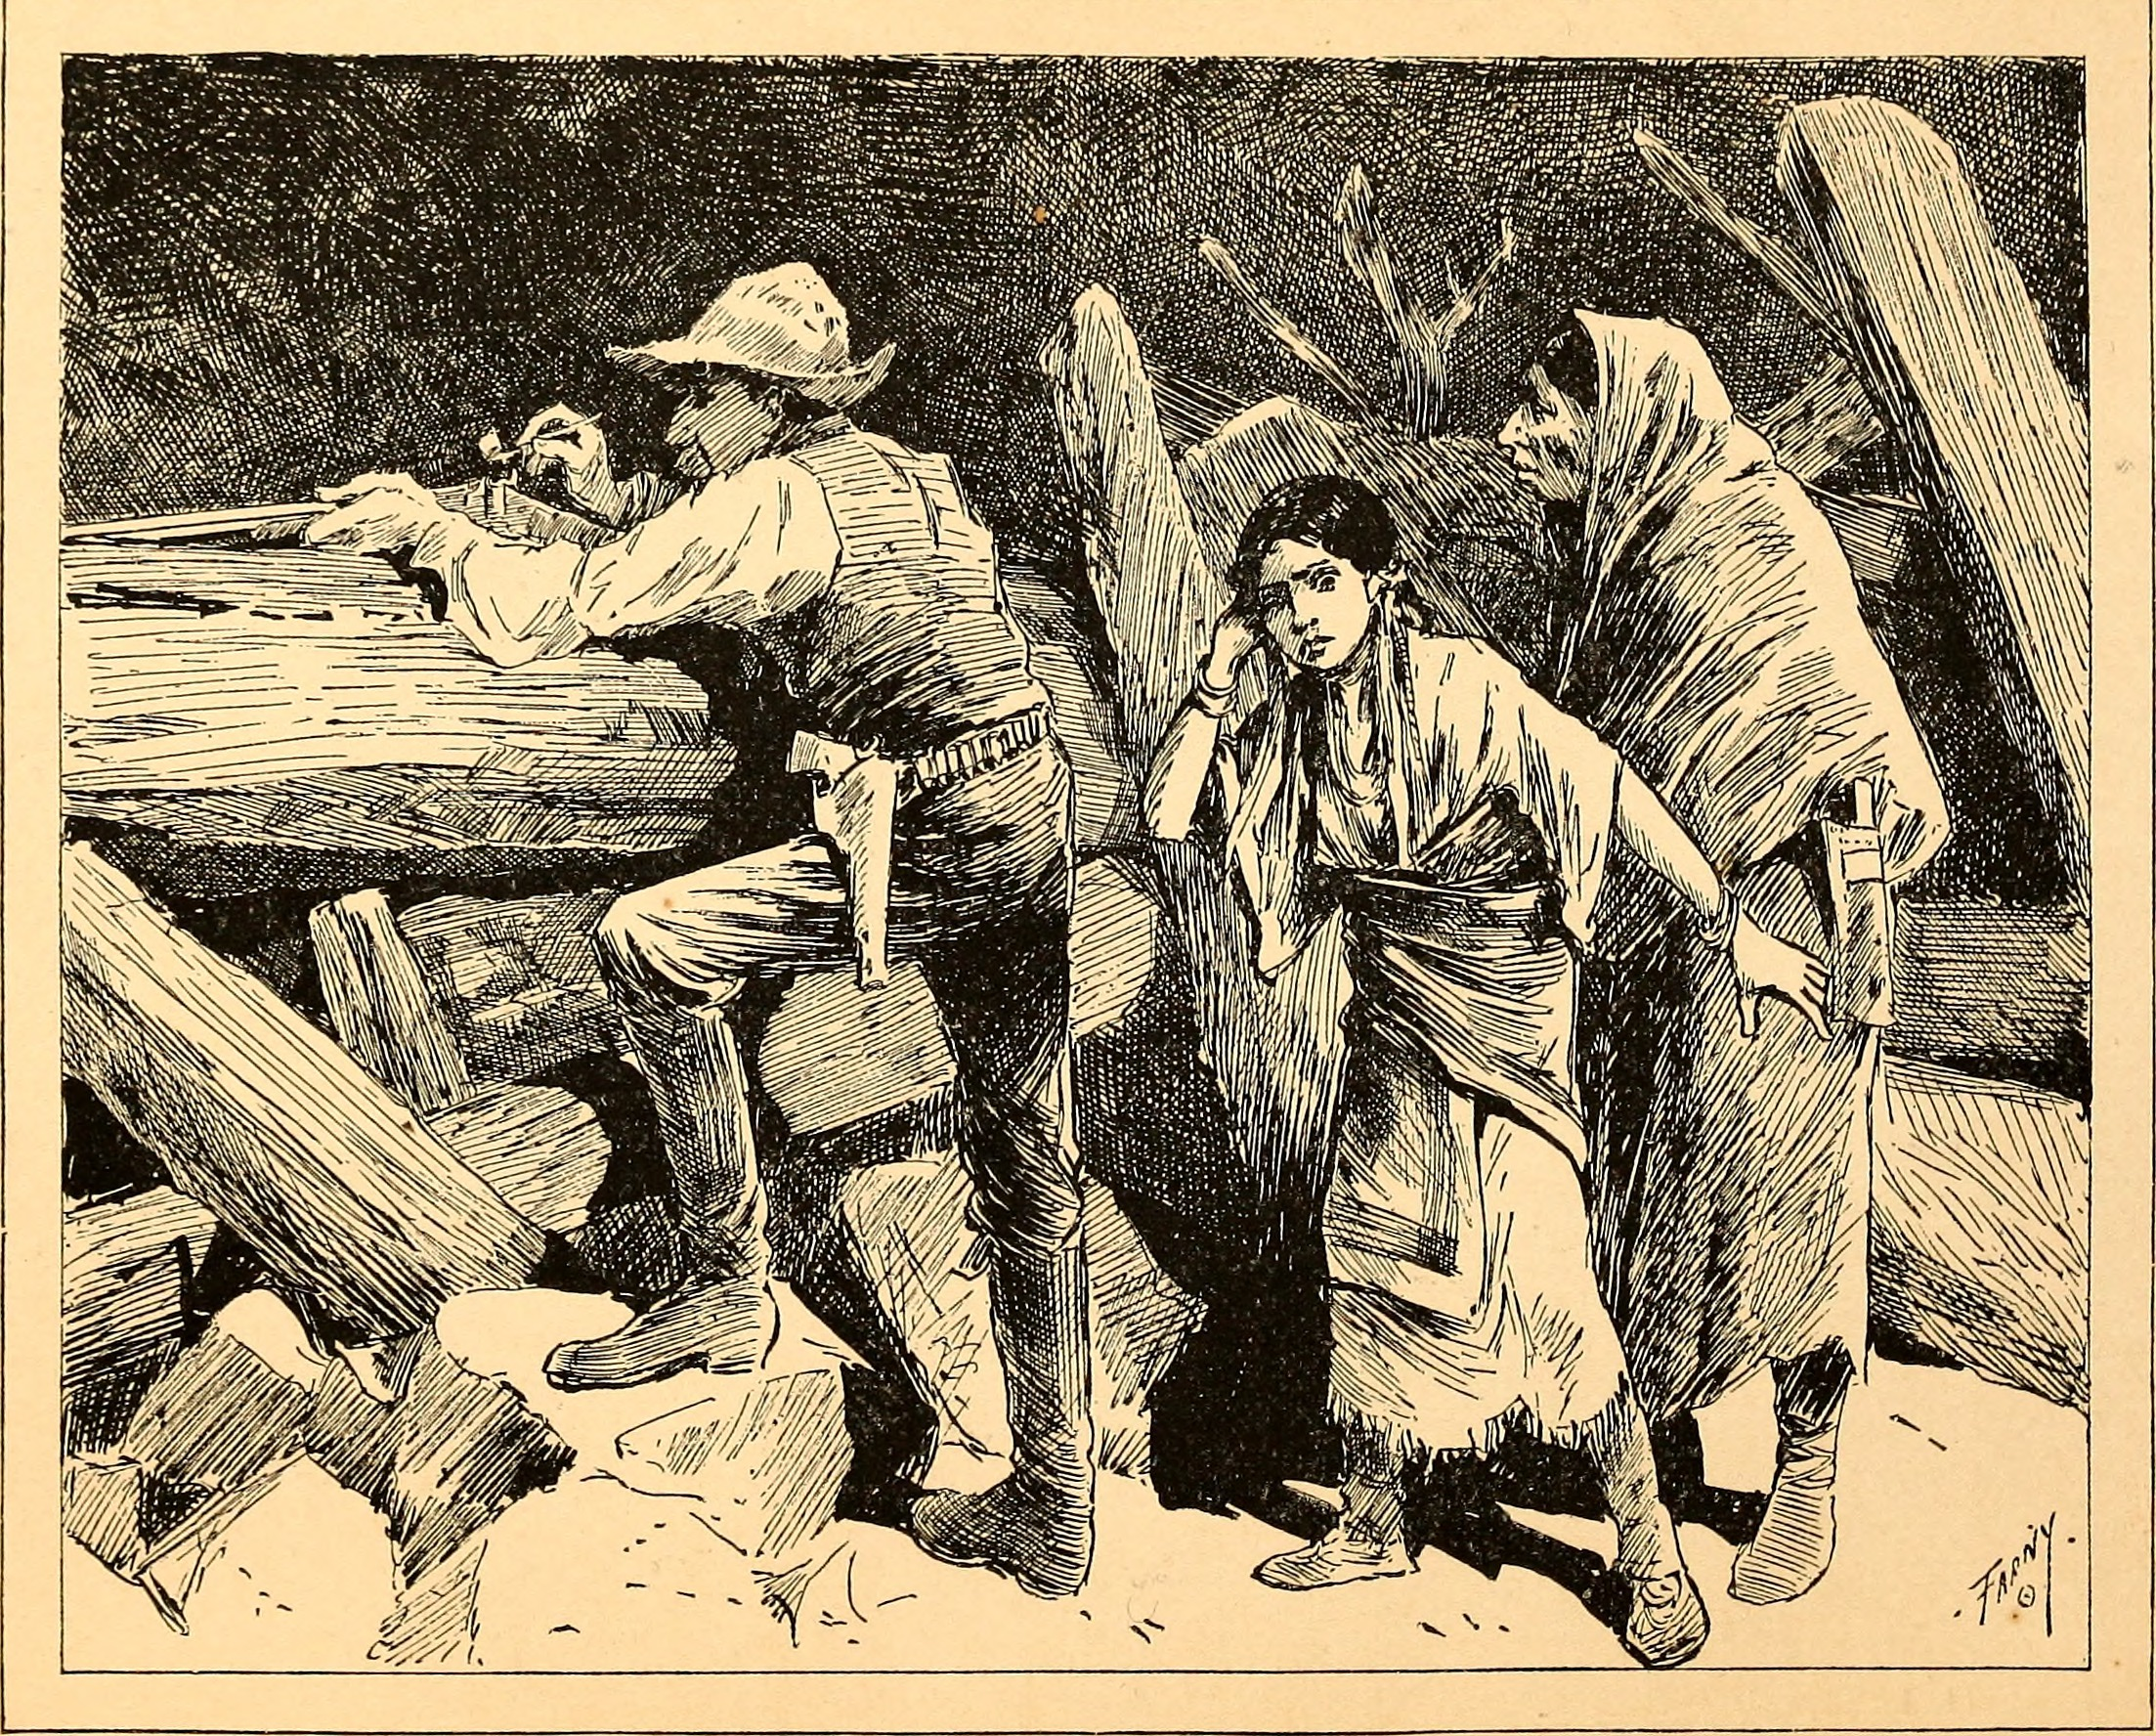 Illustration of ''Two arrows - a story of red and white'' (1886)